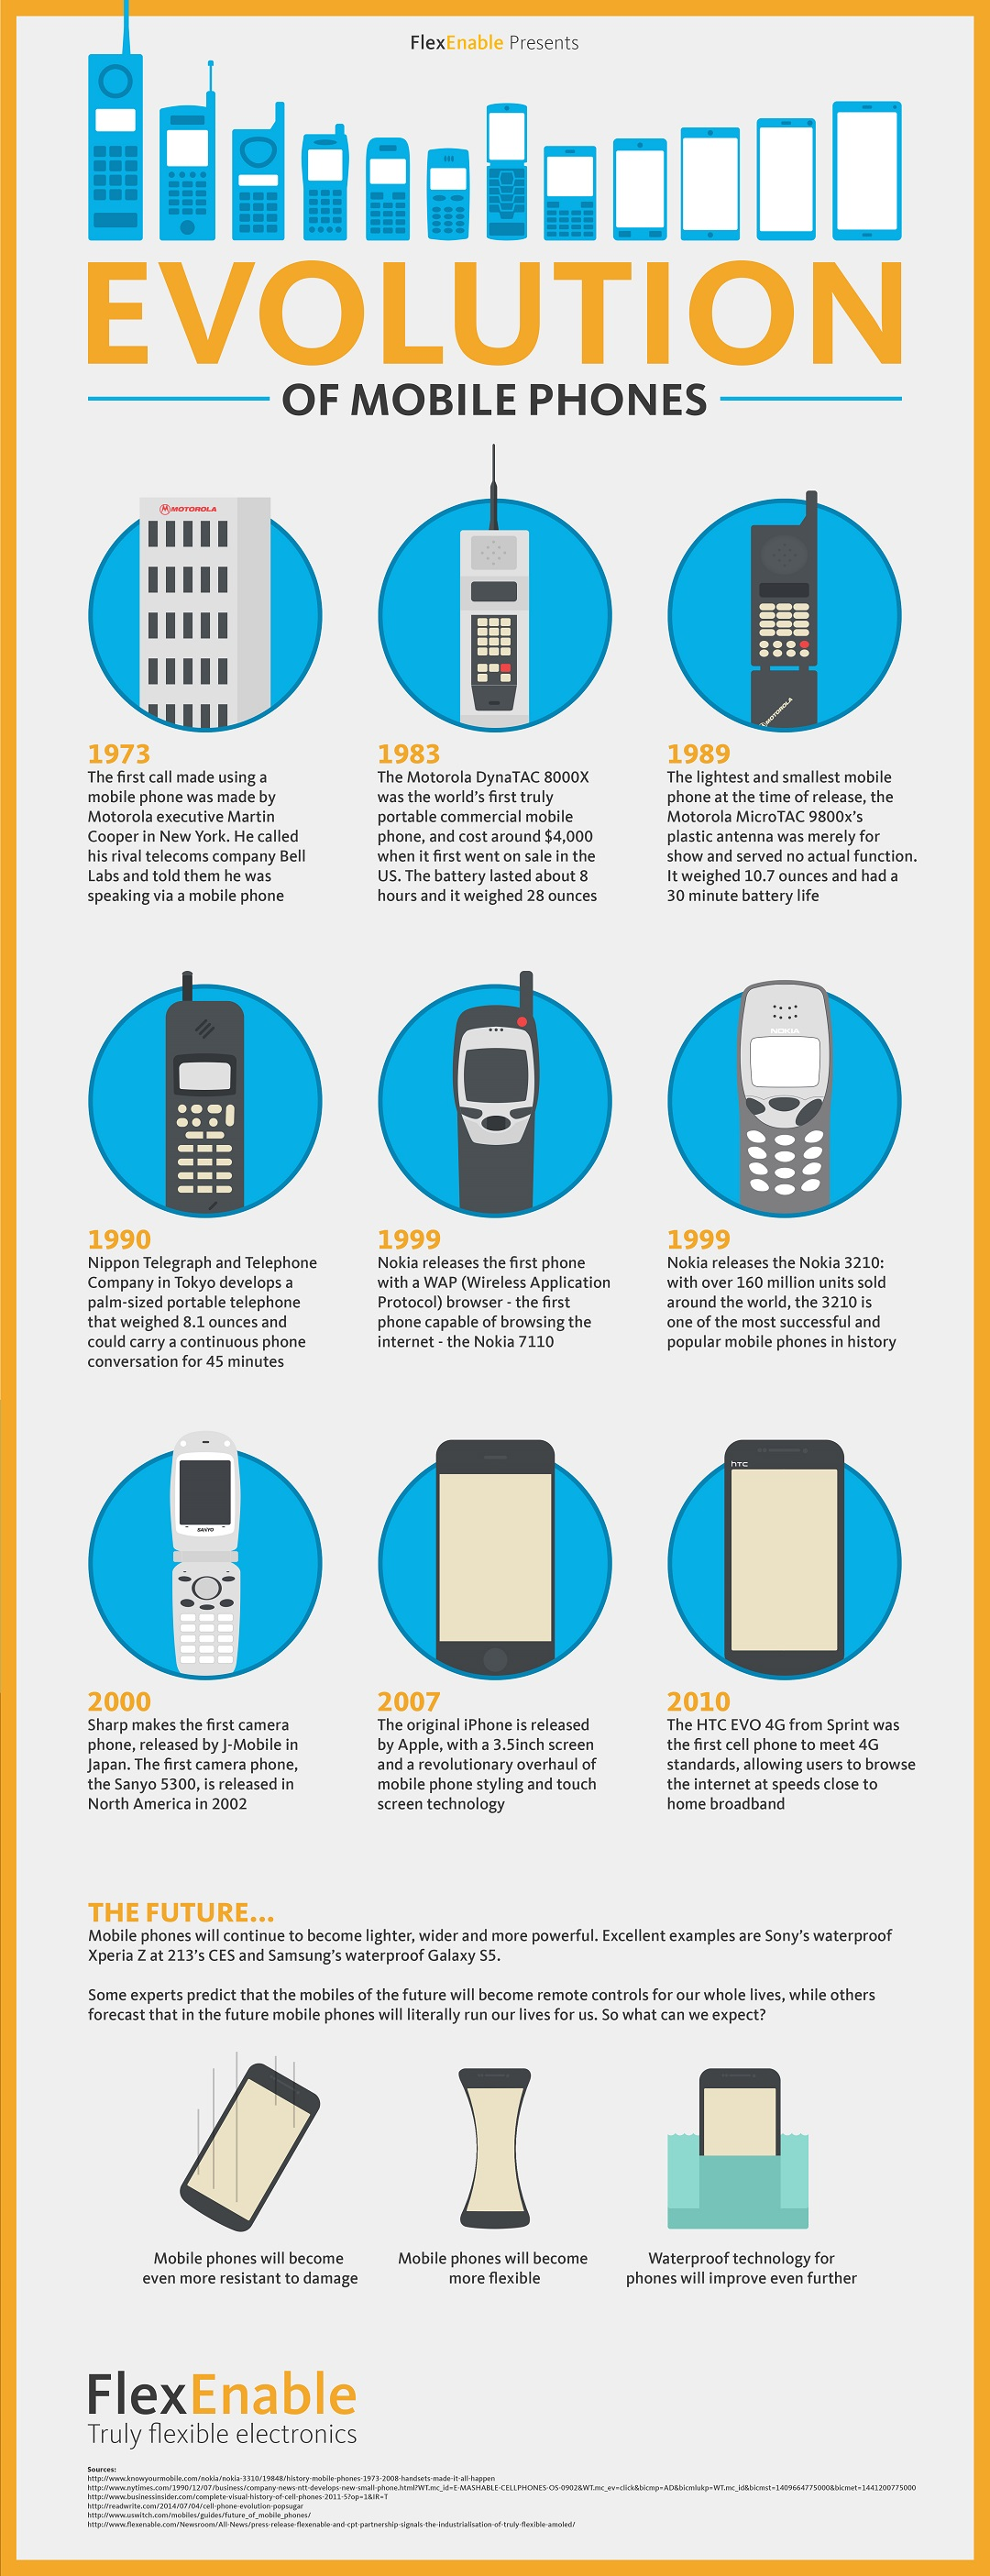 The Evolution of Mobile Phone